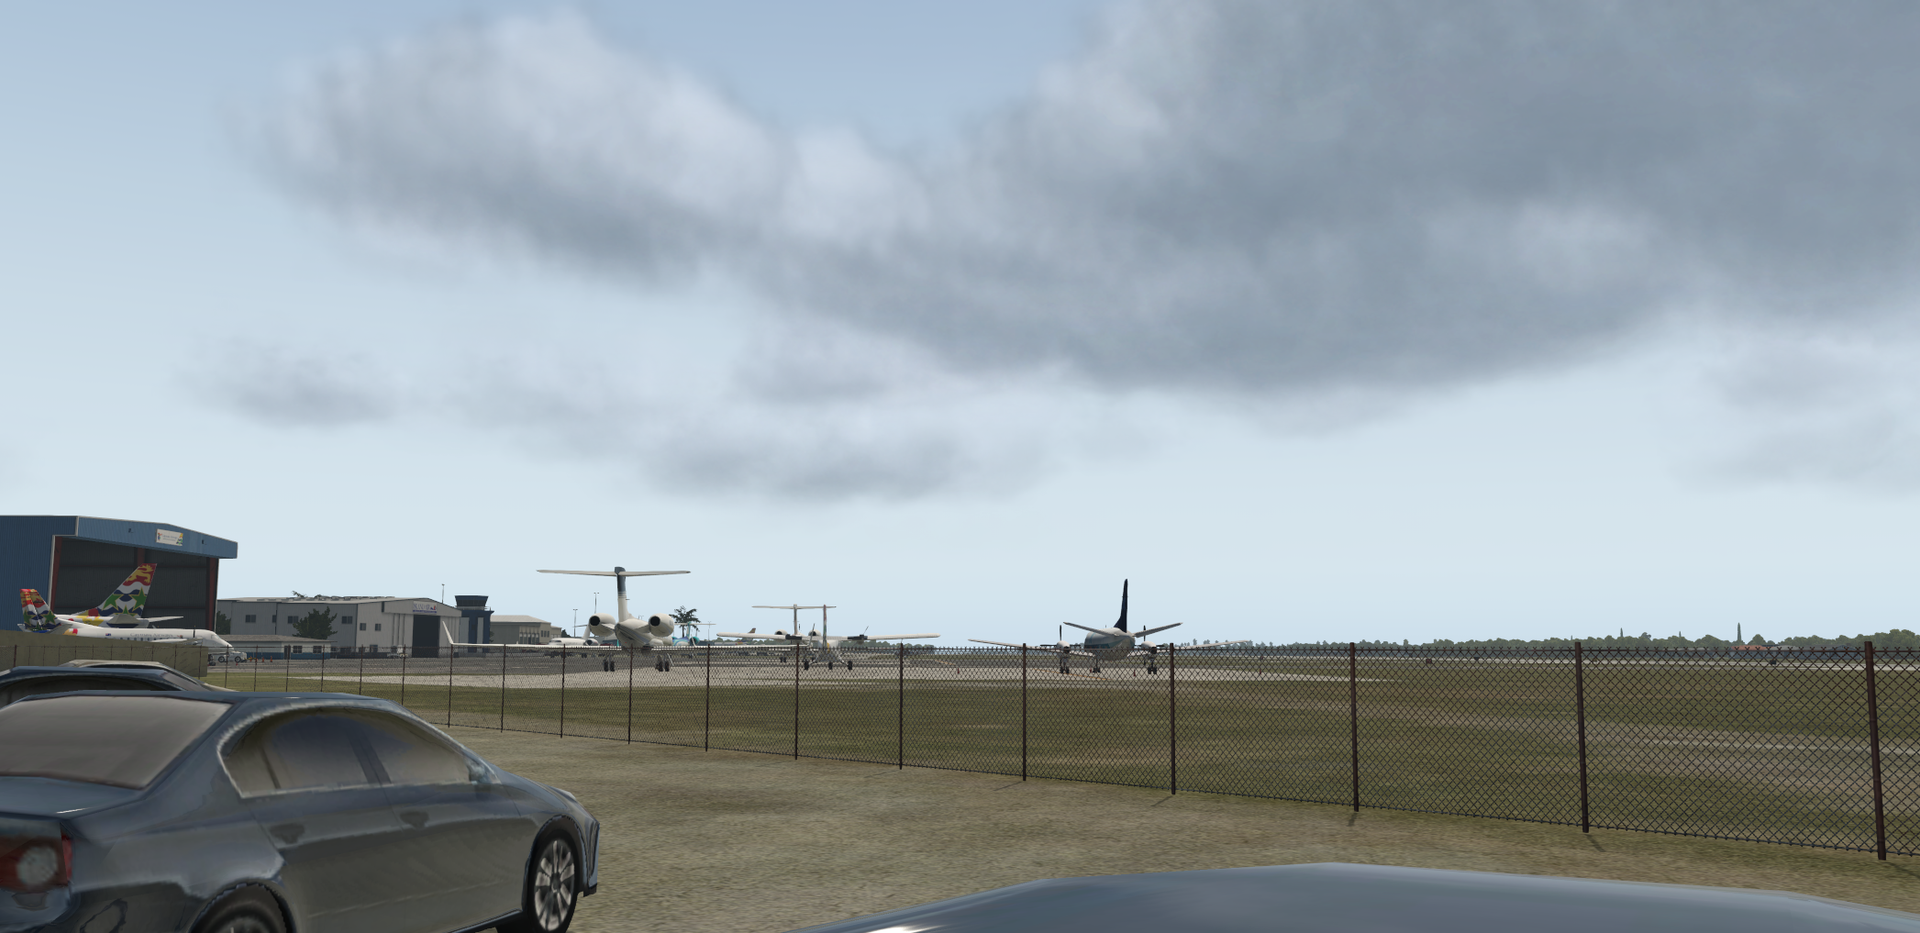 b738_67.png